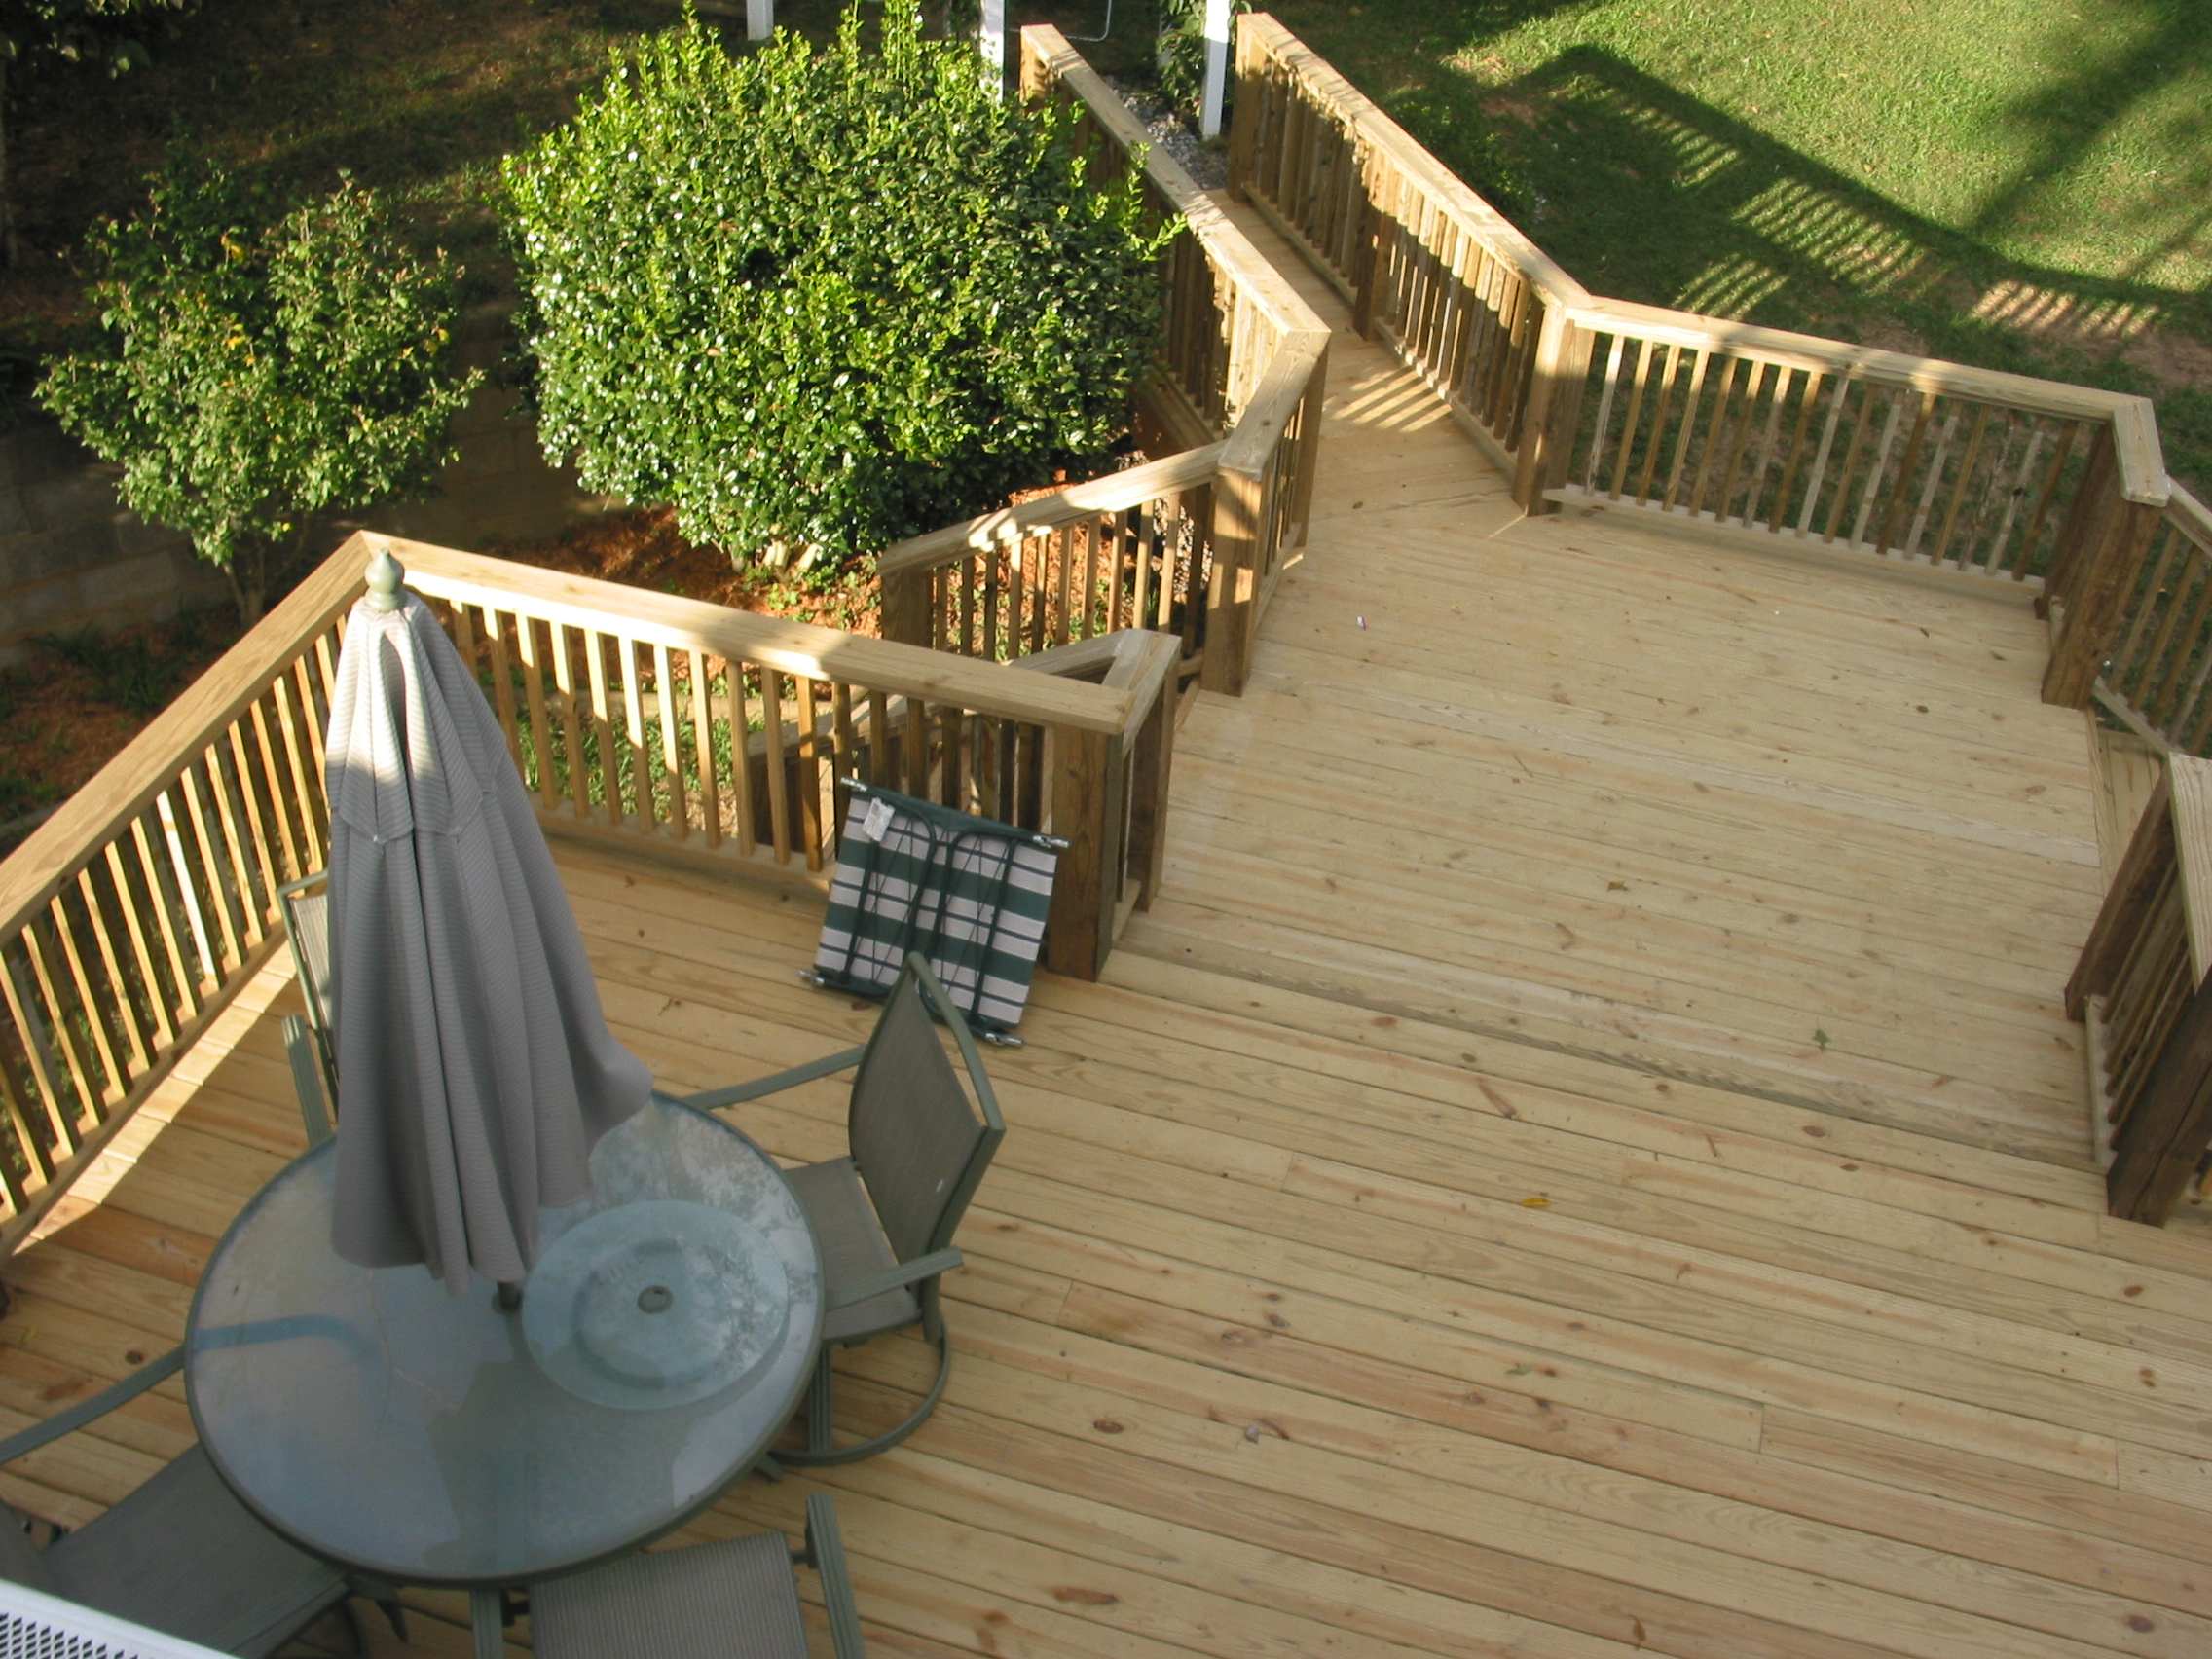 Ranson Residence, Multi-level deck with catwalk that extends to garden area.